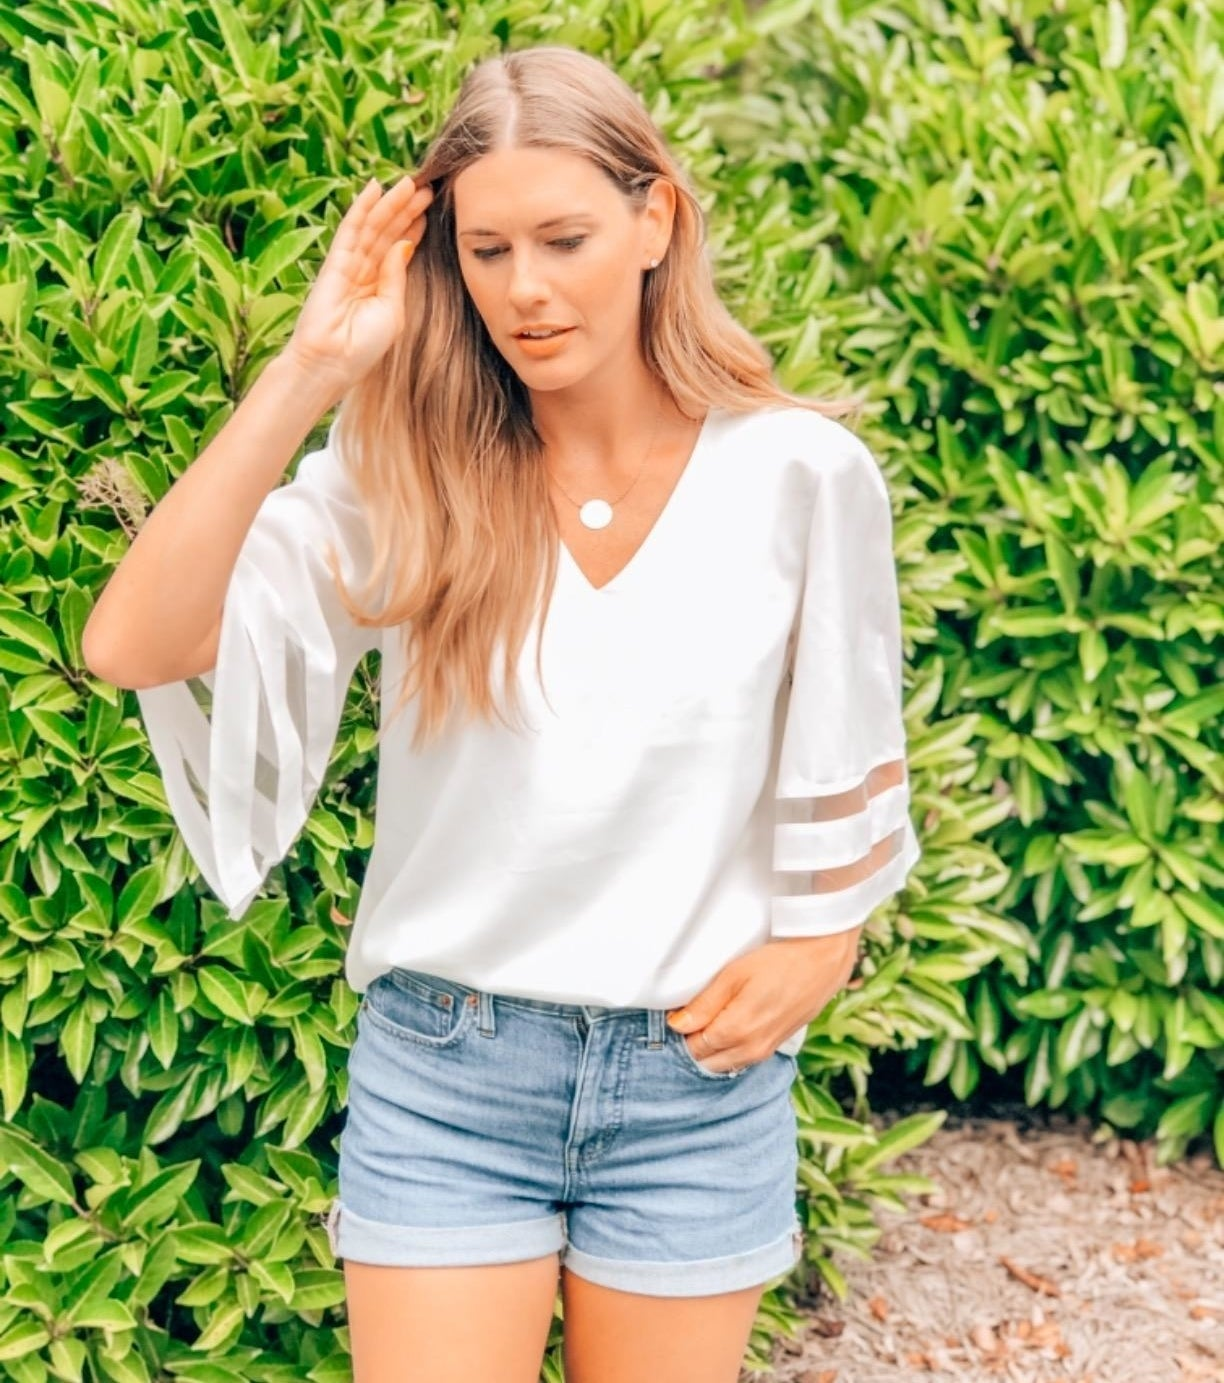 Reviewer wearing white top